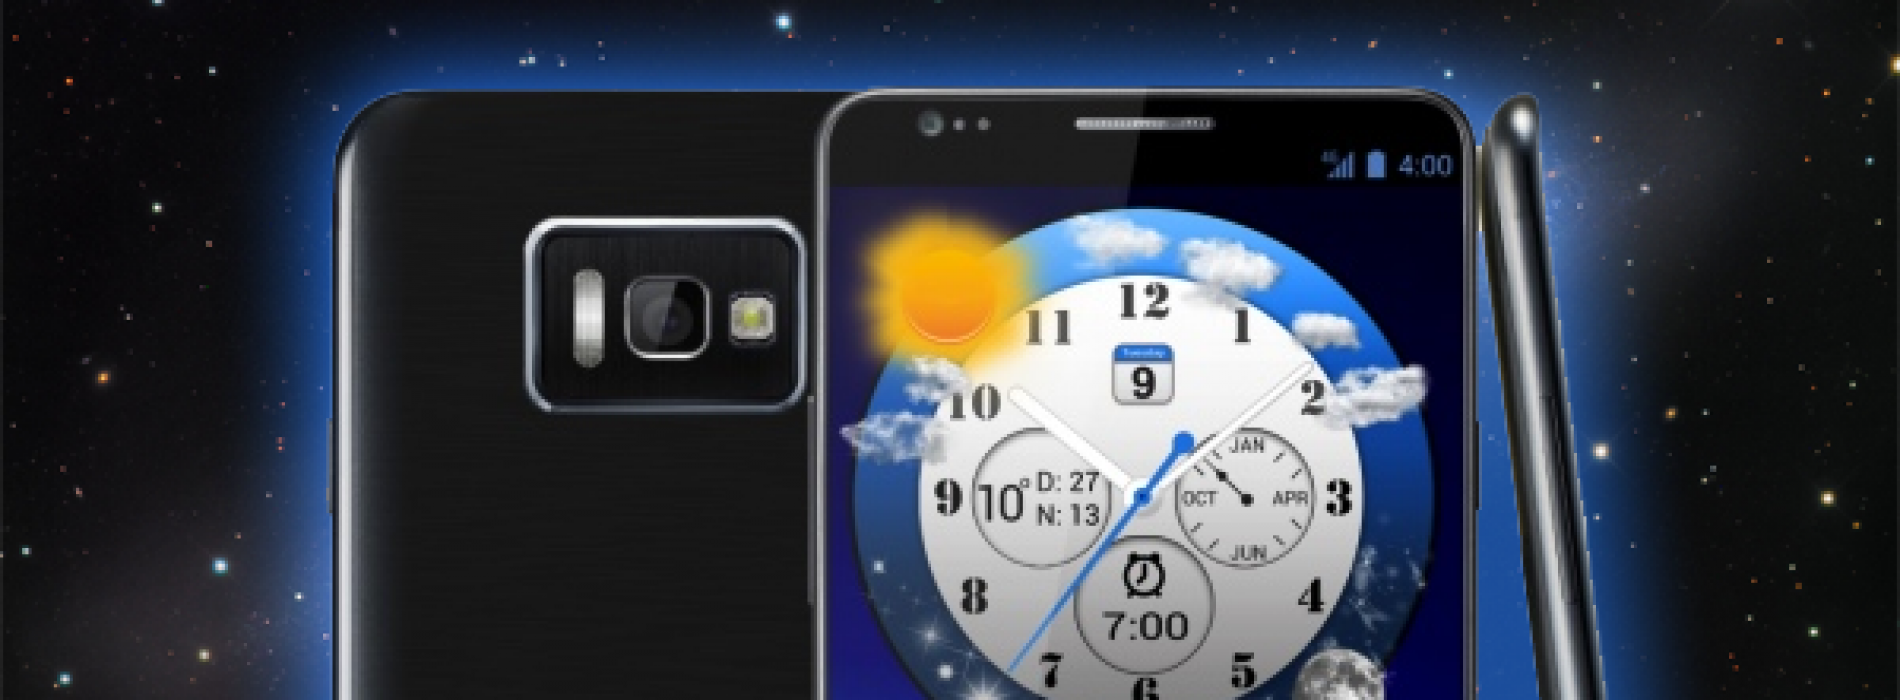 Galaxy S III to feature proprietary wireless charging technology?